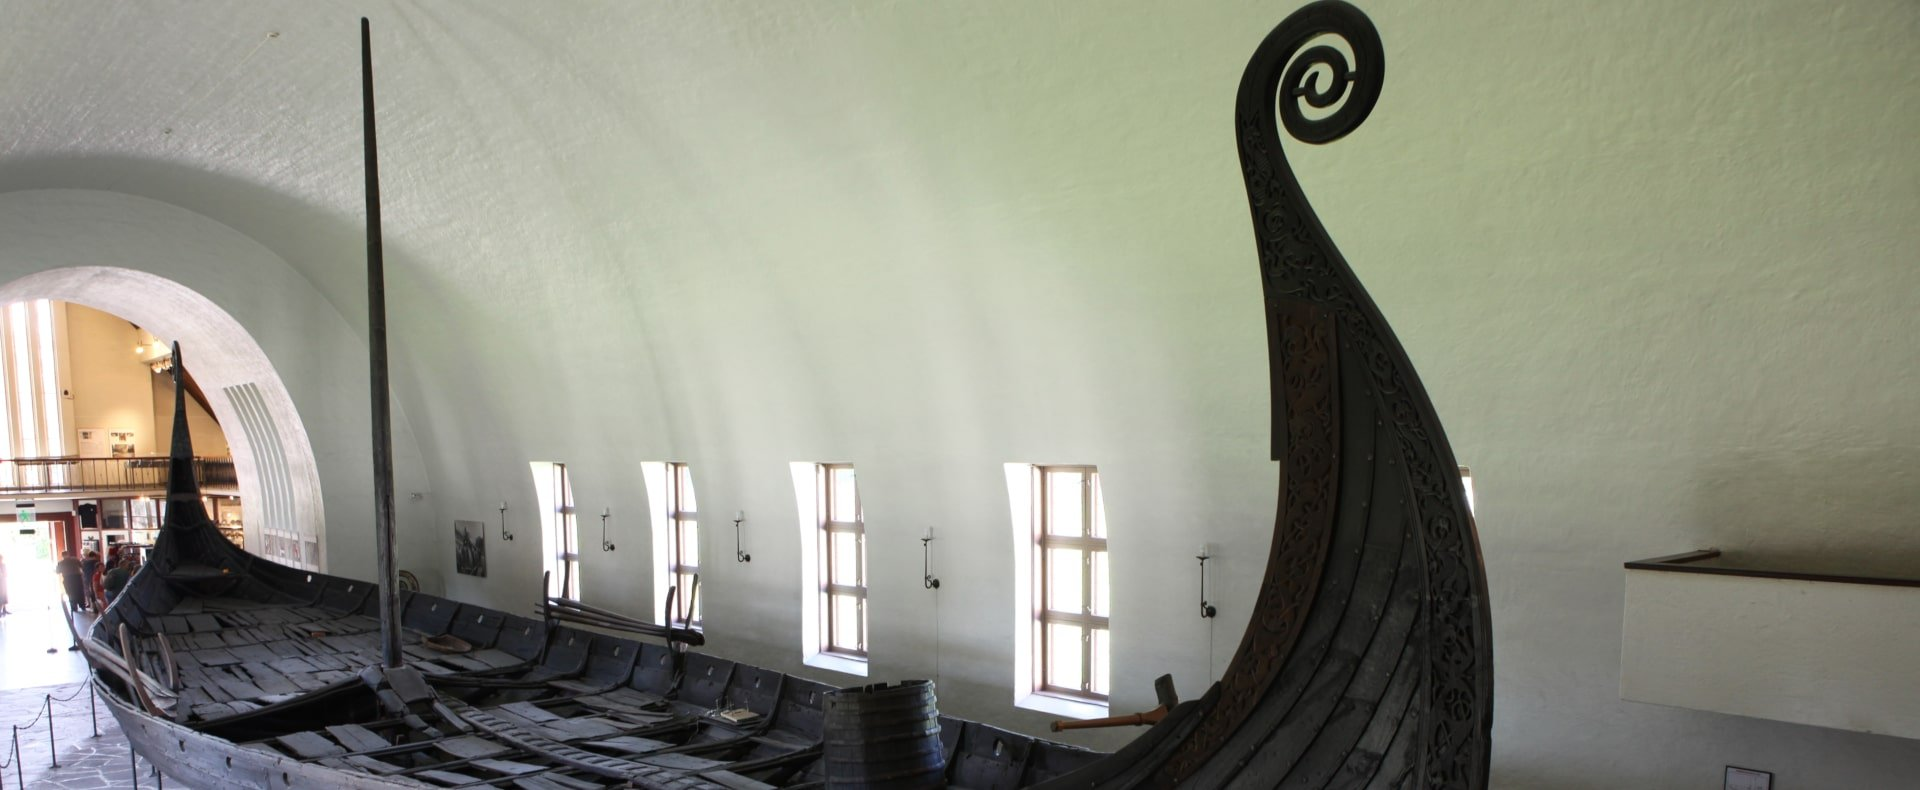 Viking Ship Museum, Oslo, Norway